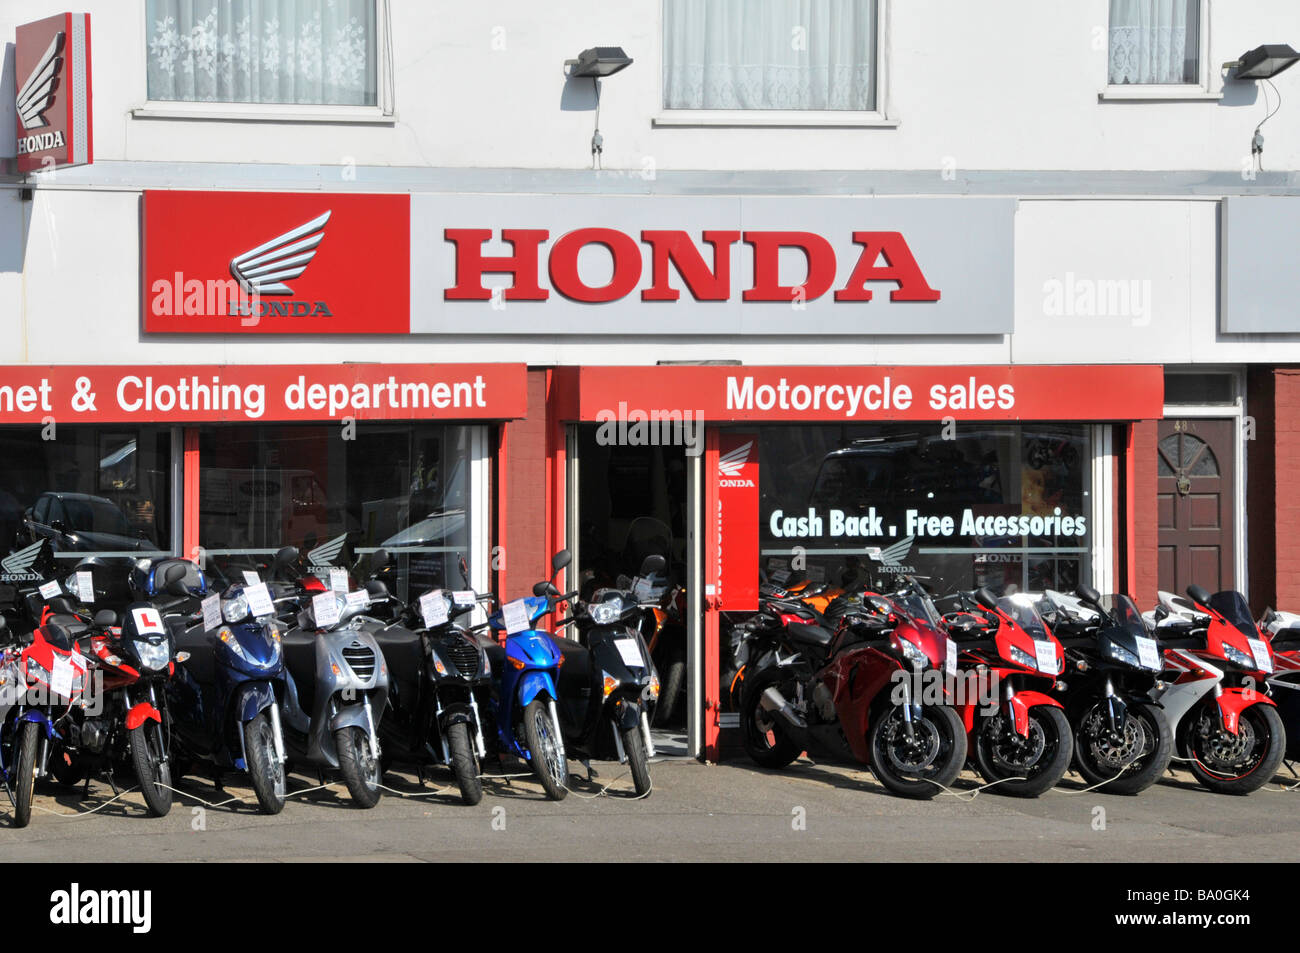 Honda Signs Above Display Of Motorbikes For Sale At A